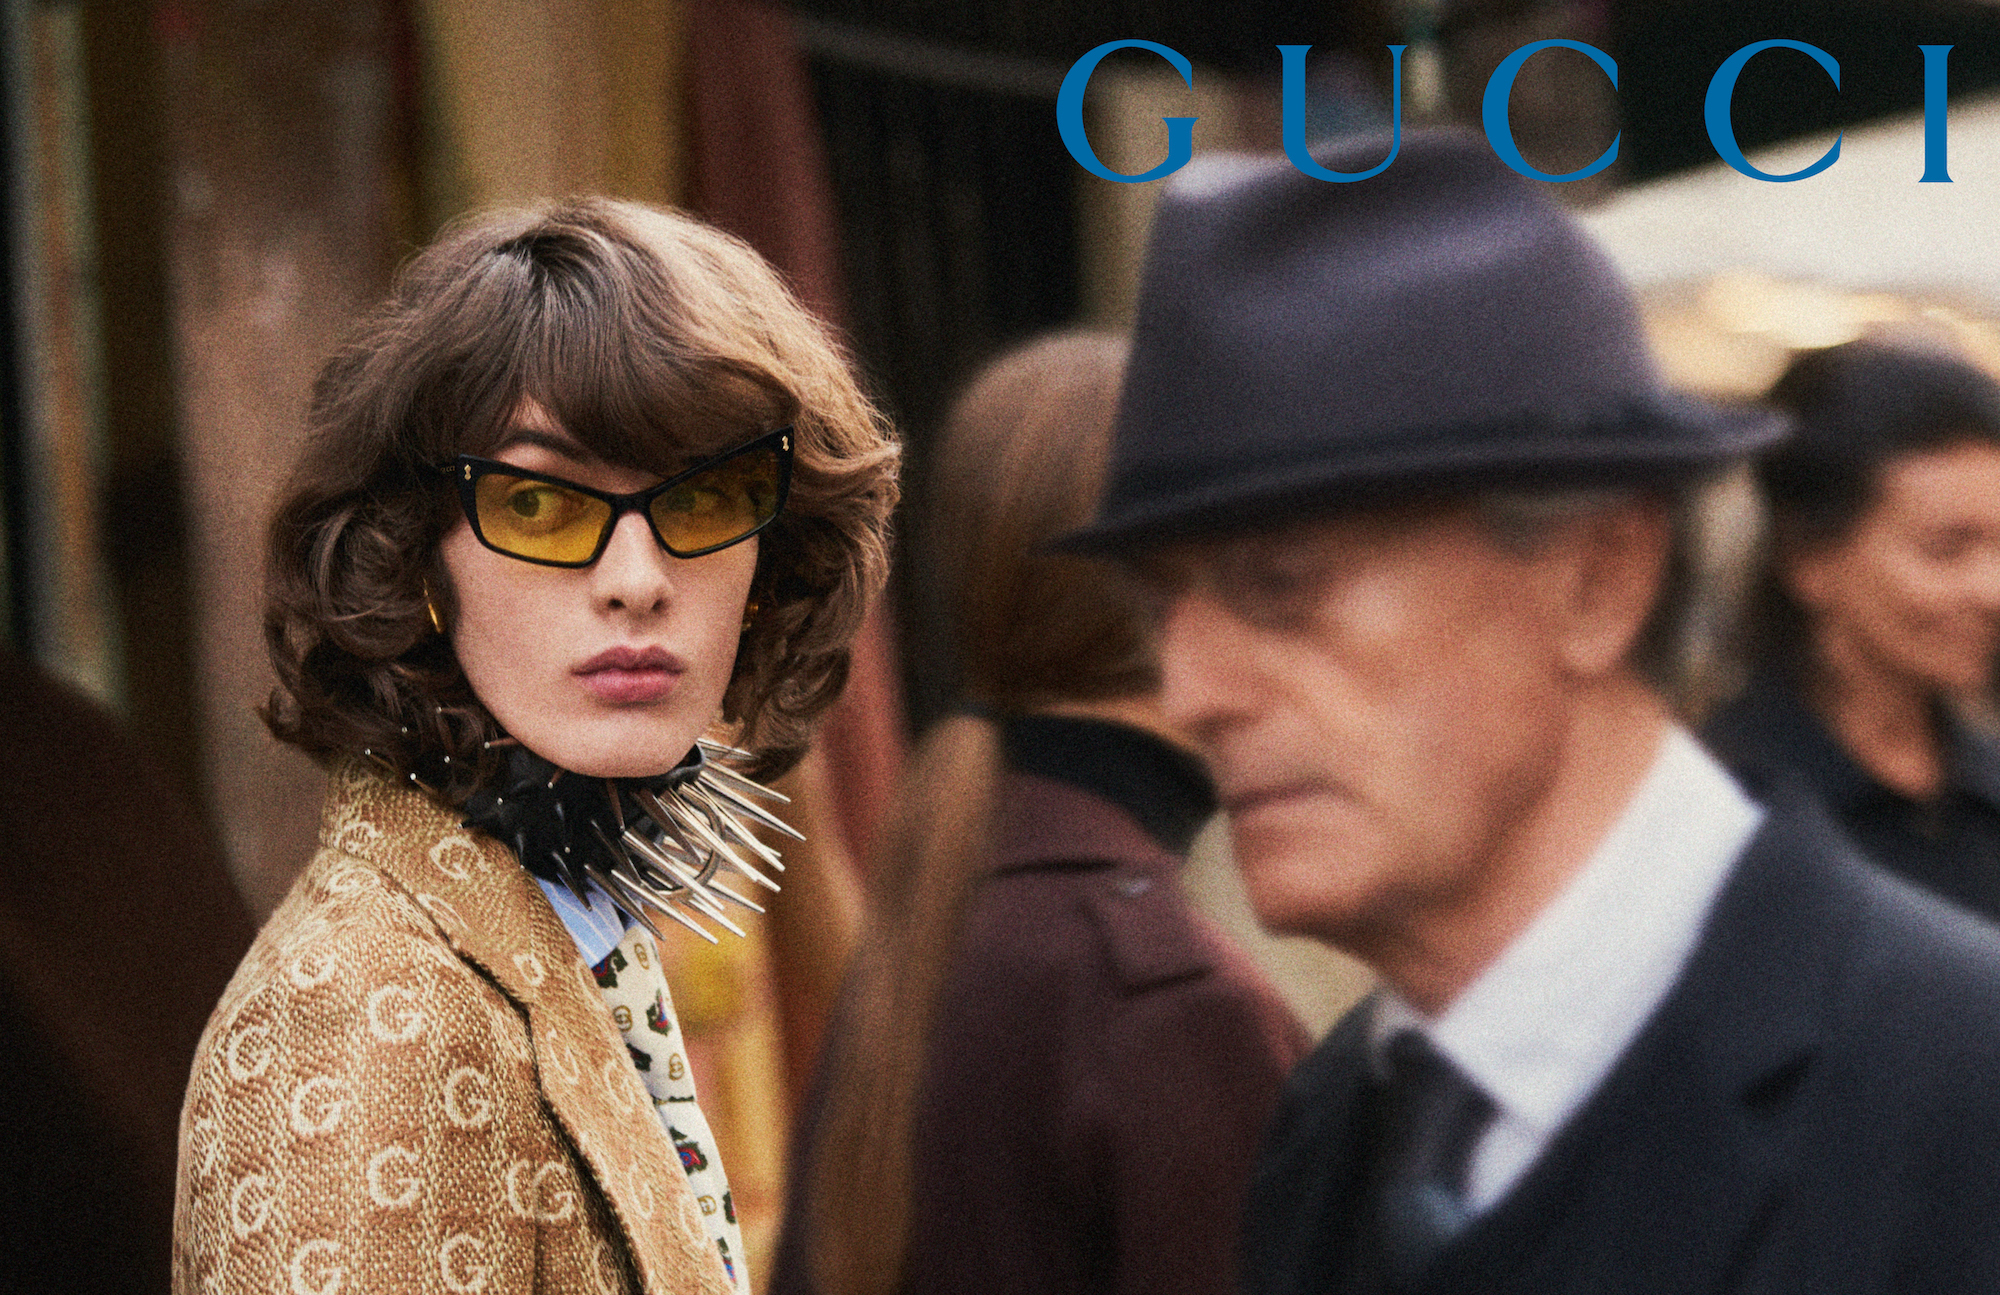 Gucci AW19 campaign shot by Glen Luchford spike collar